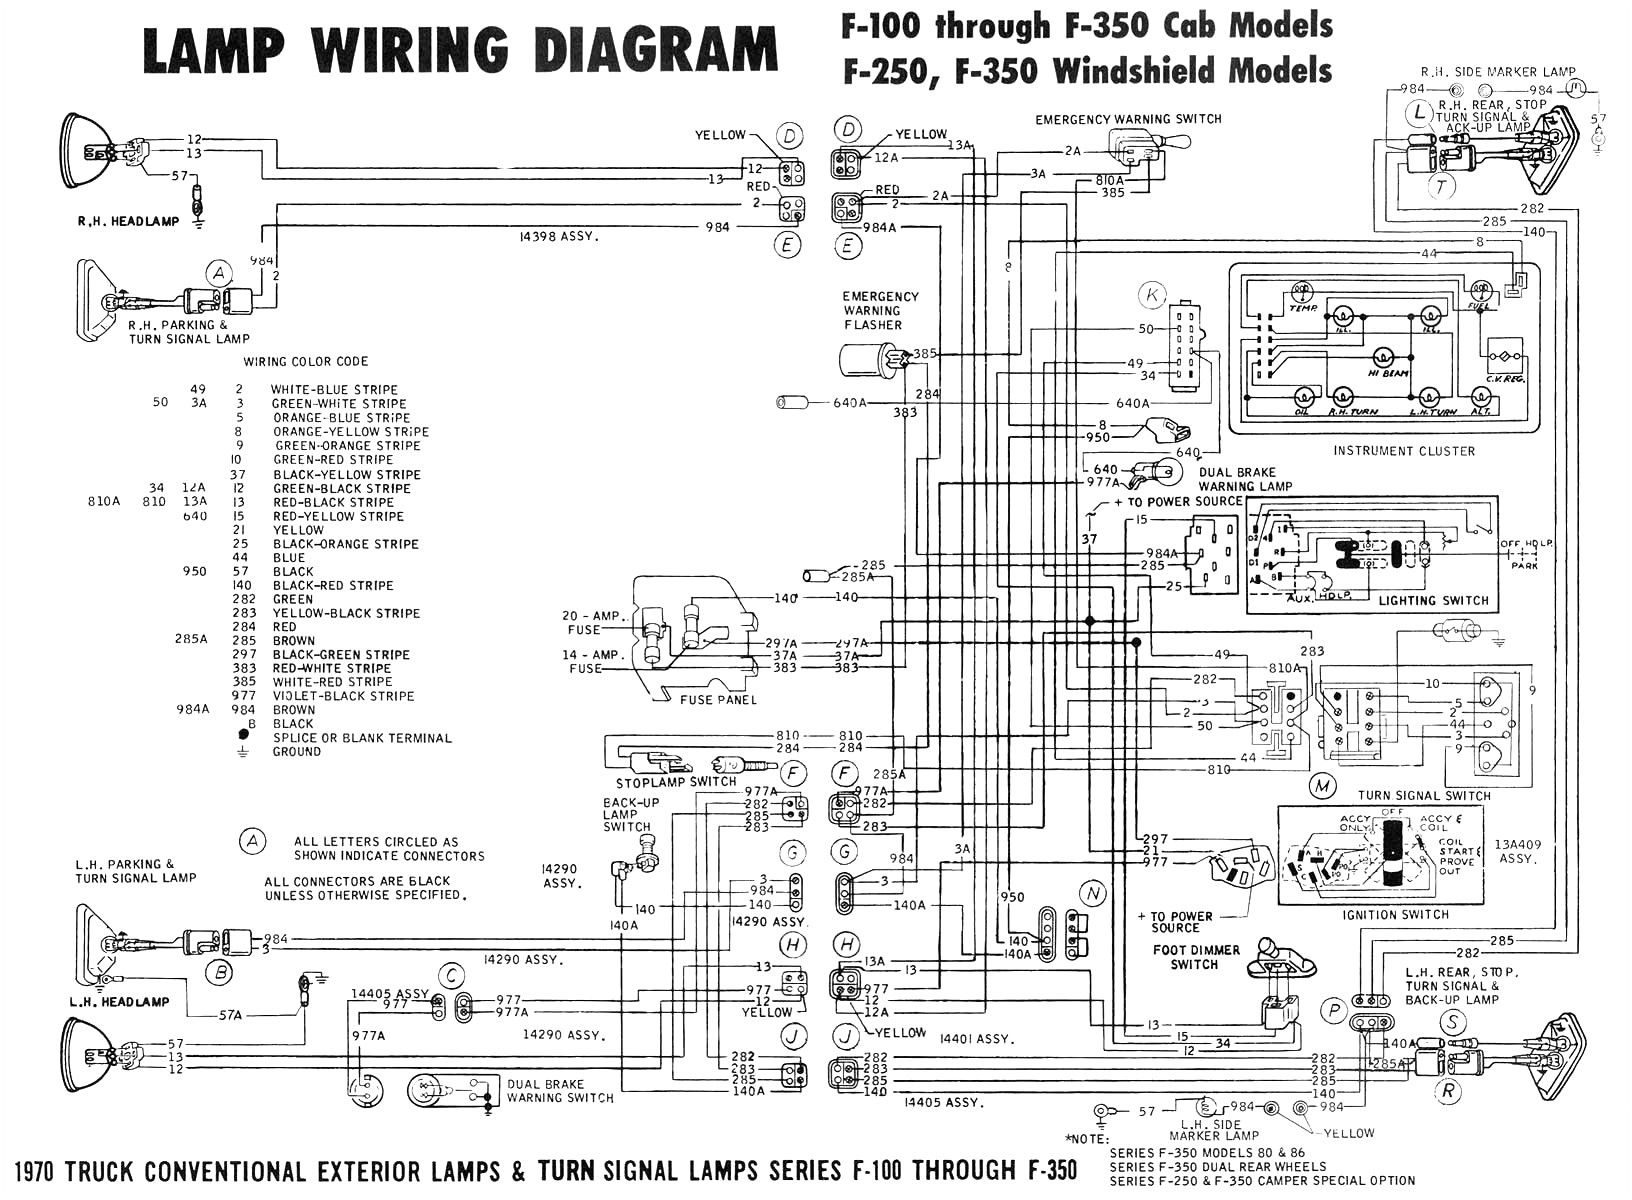 ford f 250 steering column diagram furthermore vacuum line diagram diagram furthermore 1968 mustang steering diagram also 2003 ford f 250